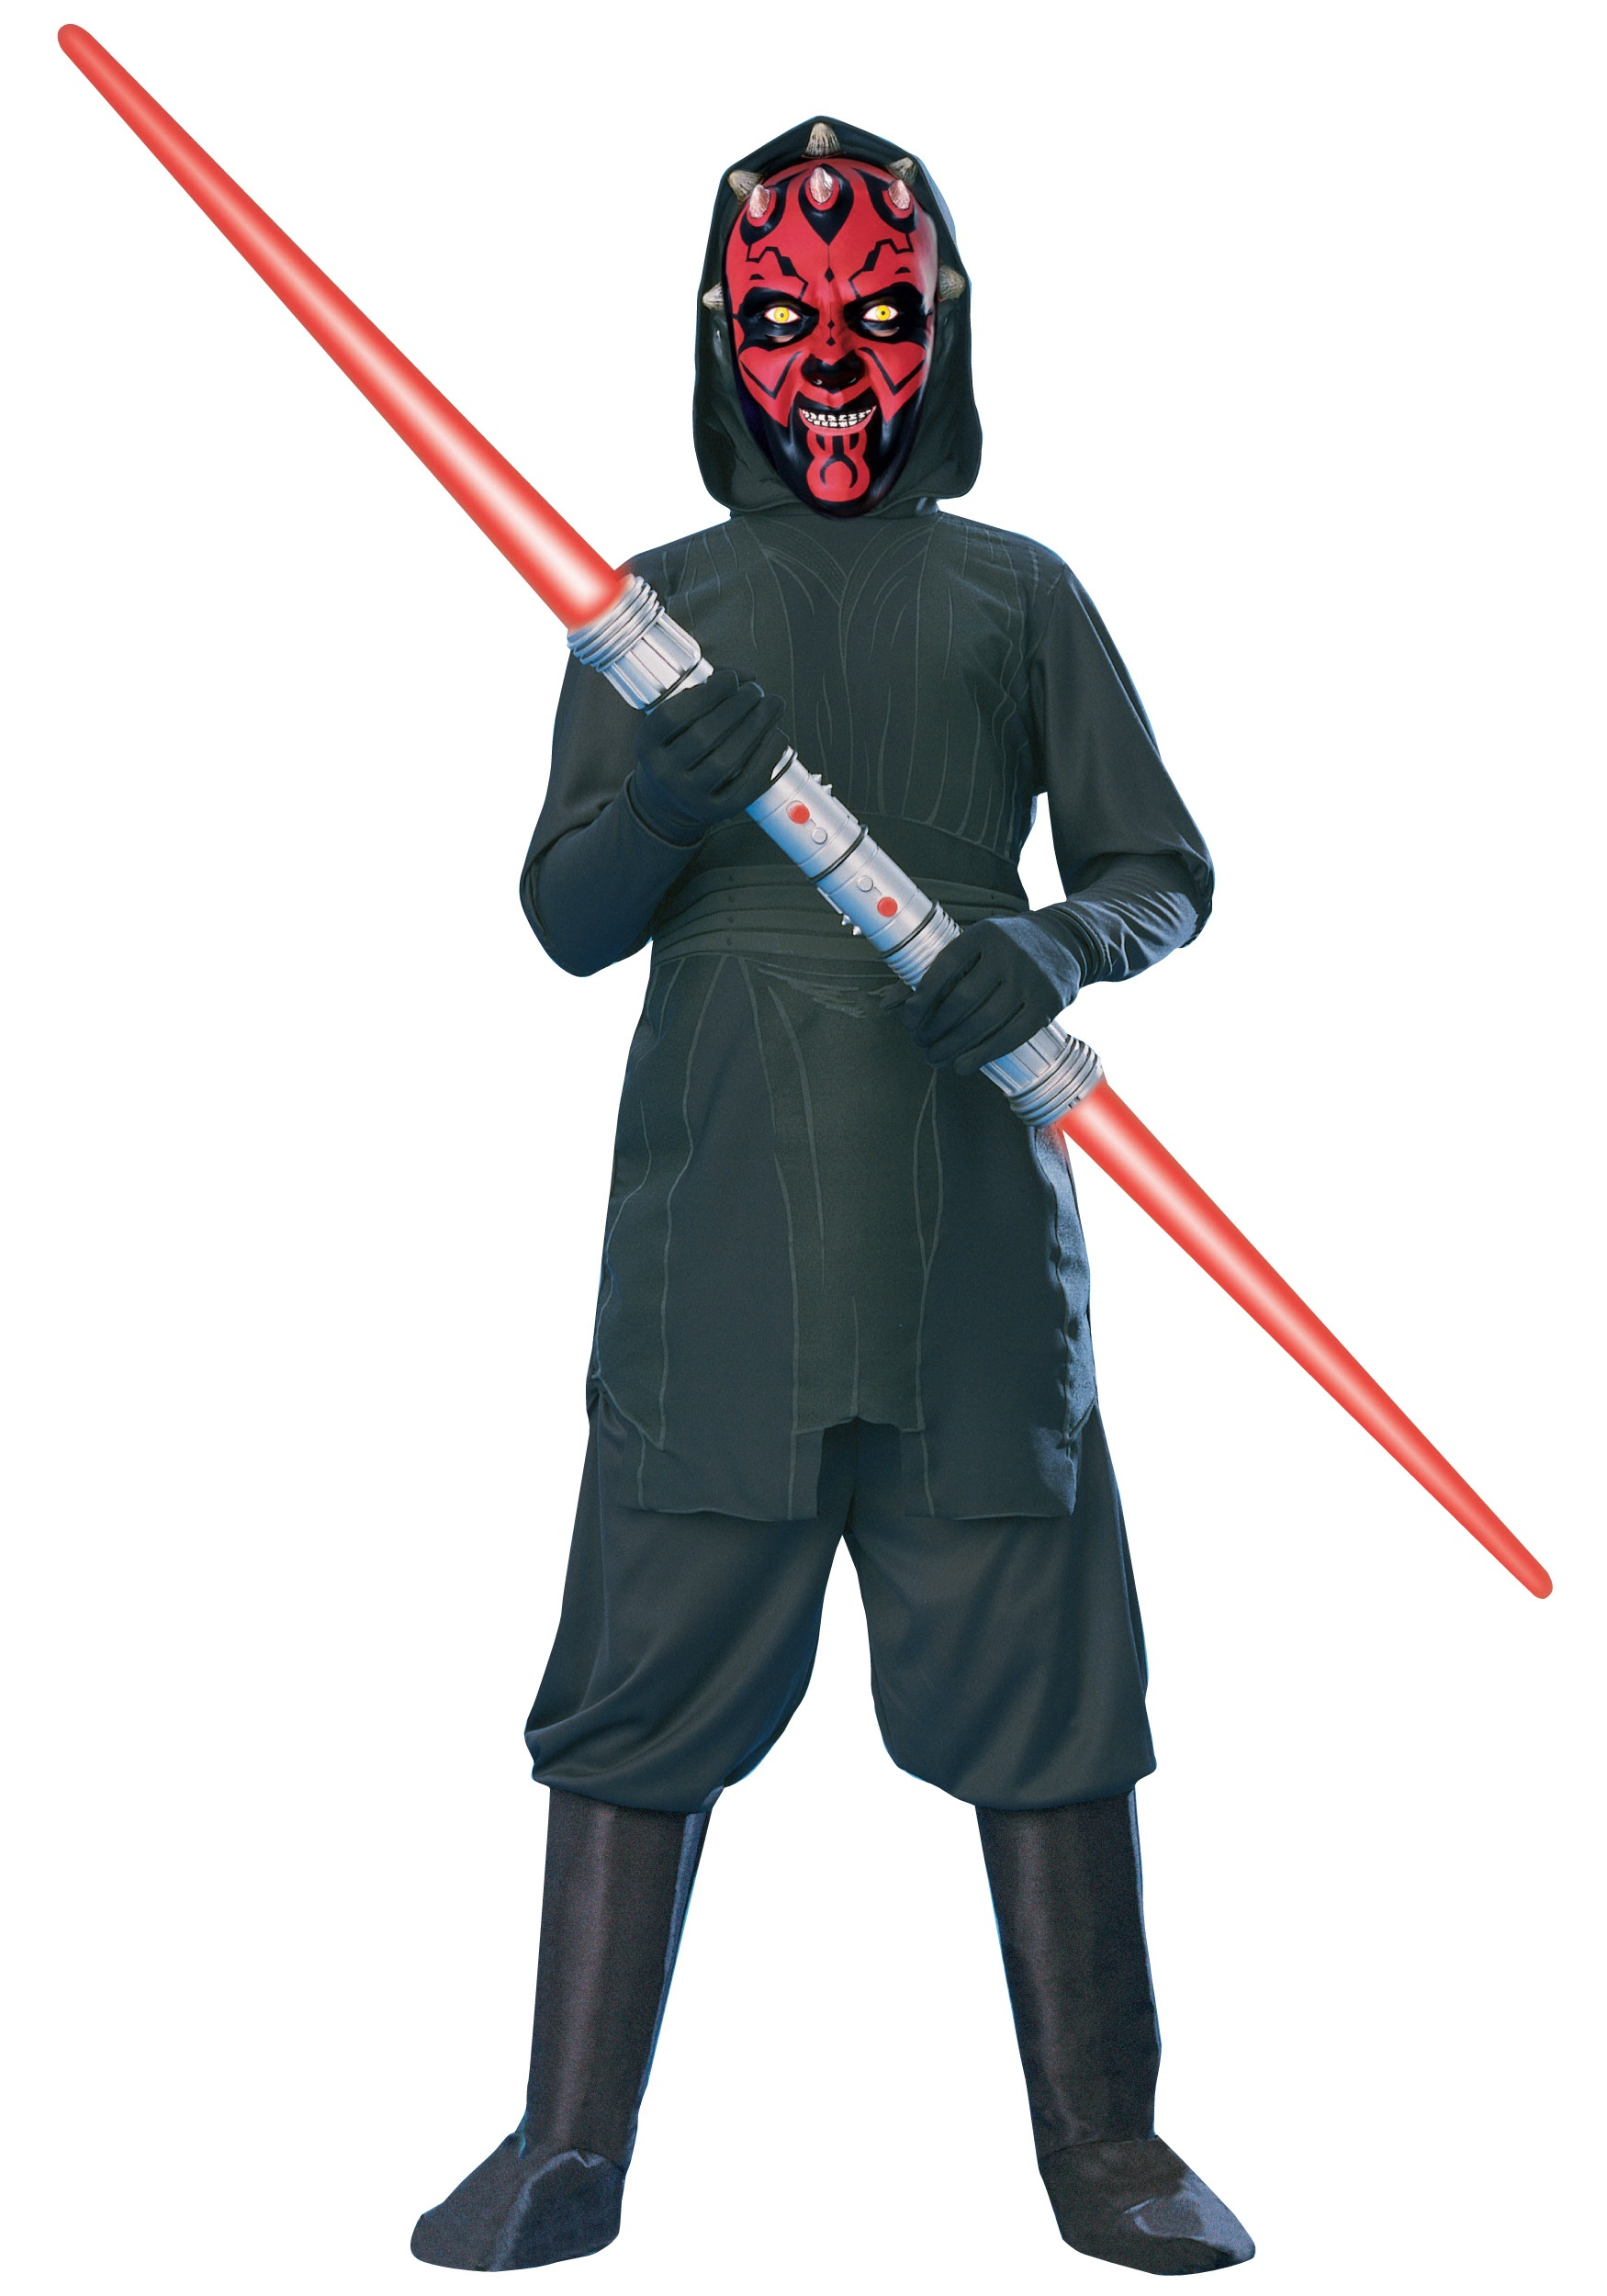 sc 1 st  Halloween Costumes : darth maul childrens costume  - Germanpascual.Com